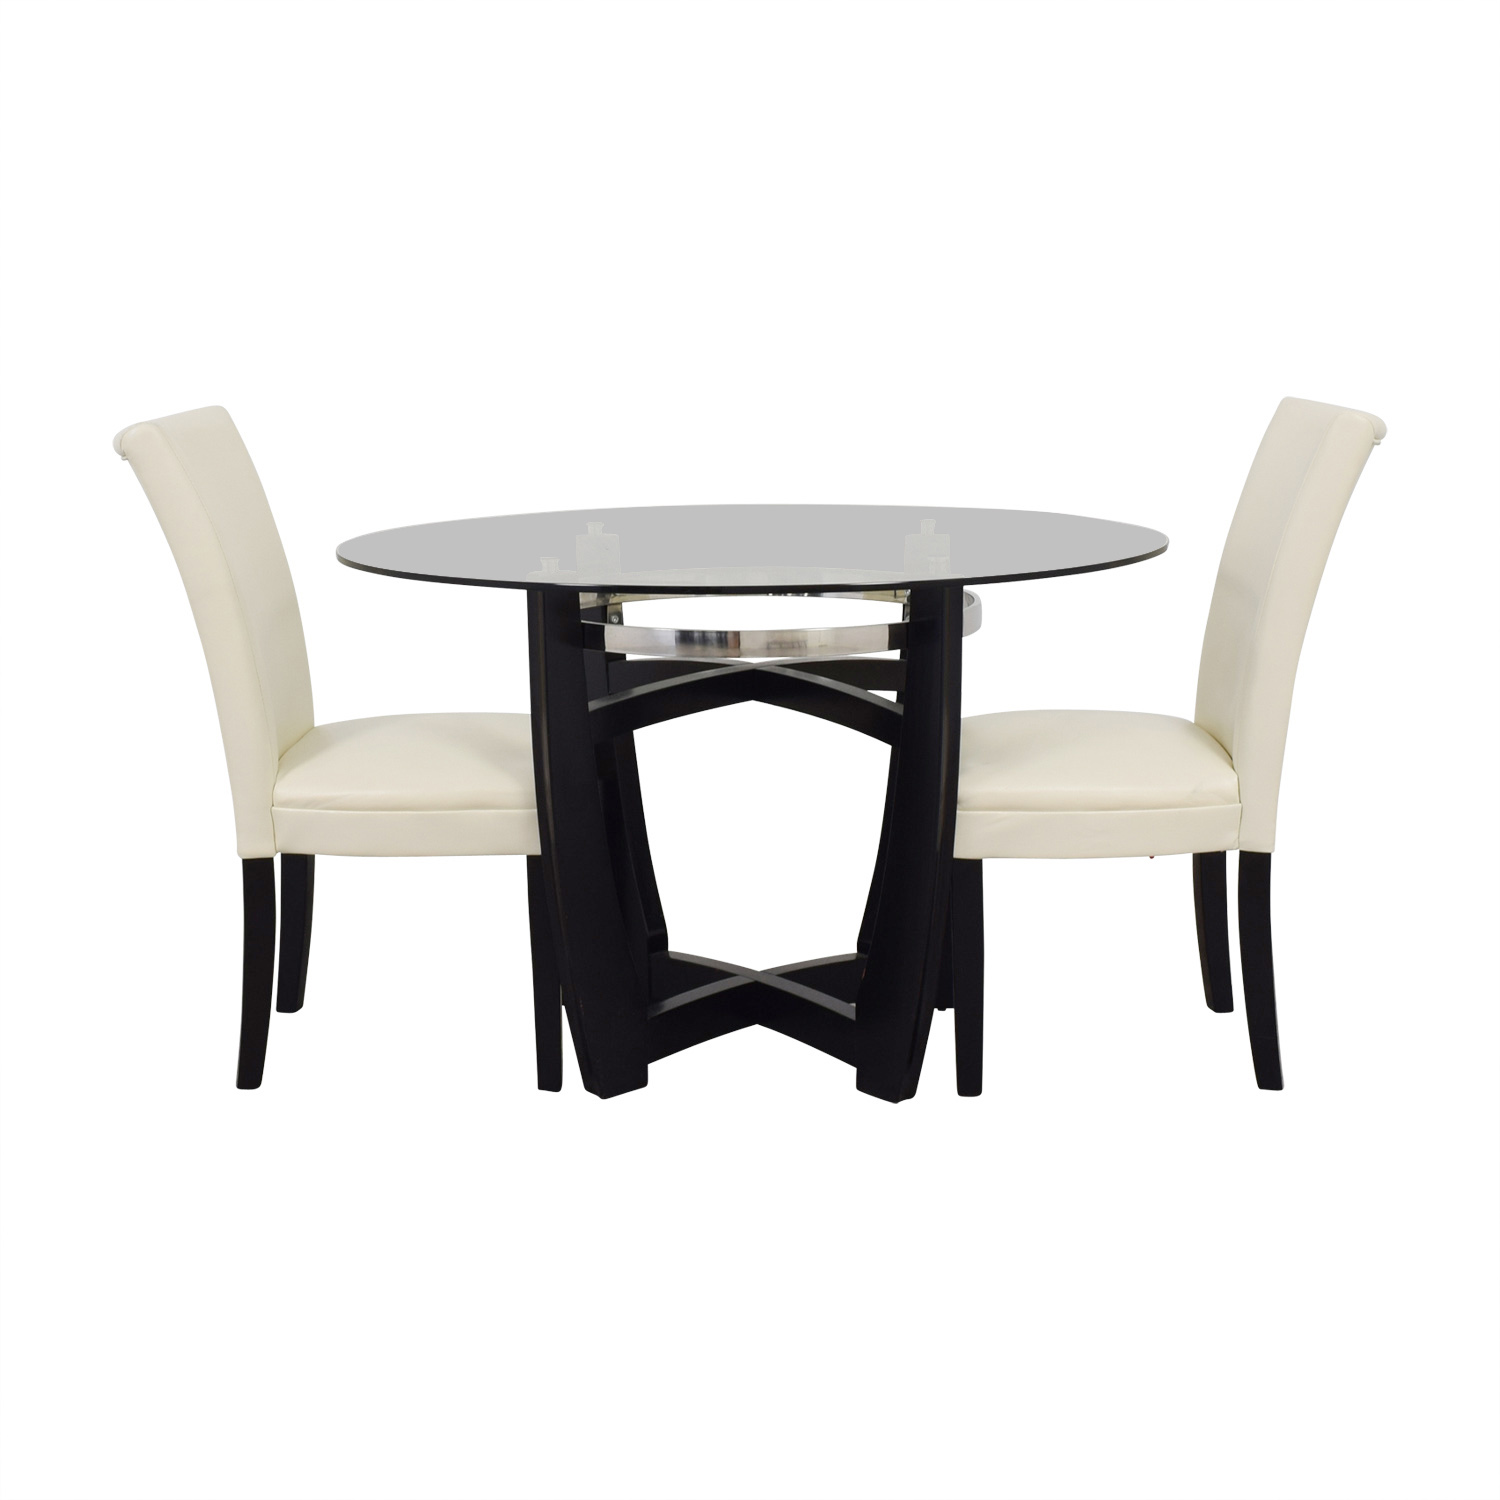 shop Bob Furniture Round Glass Table and White Chairs Bob's Furniture Dining Sets